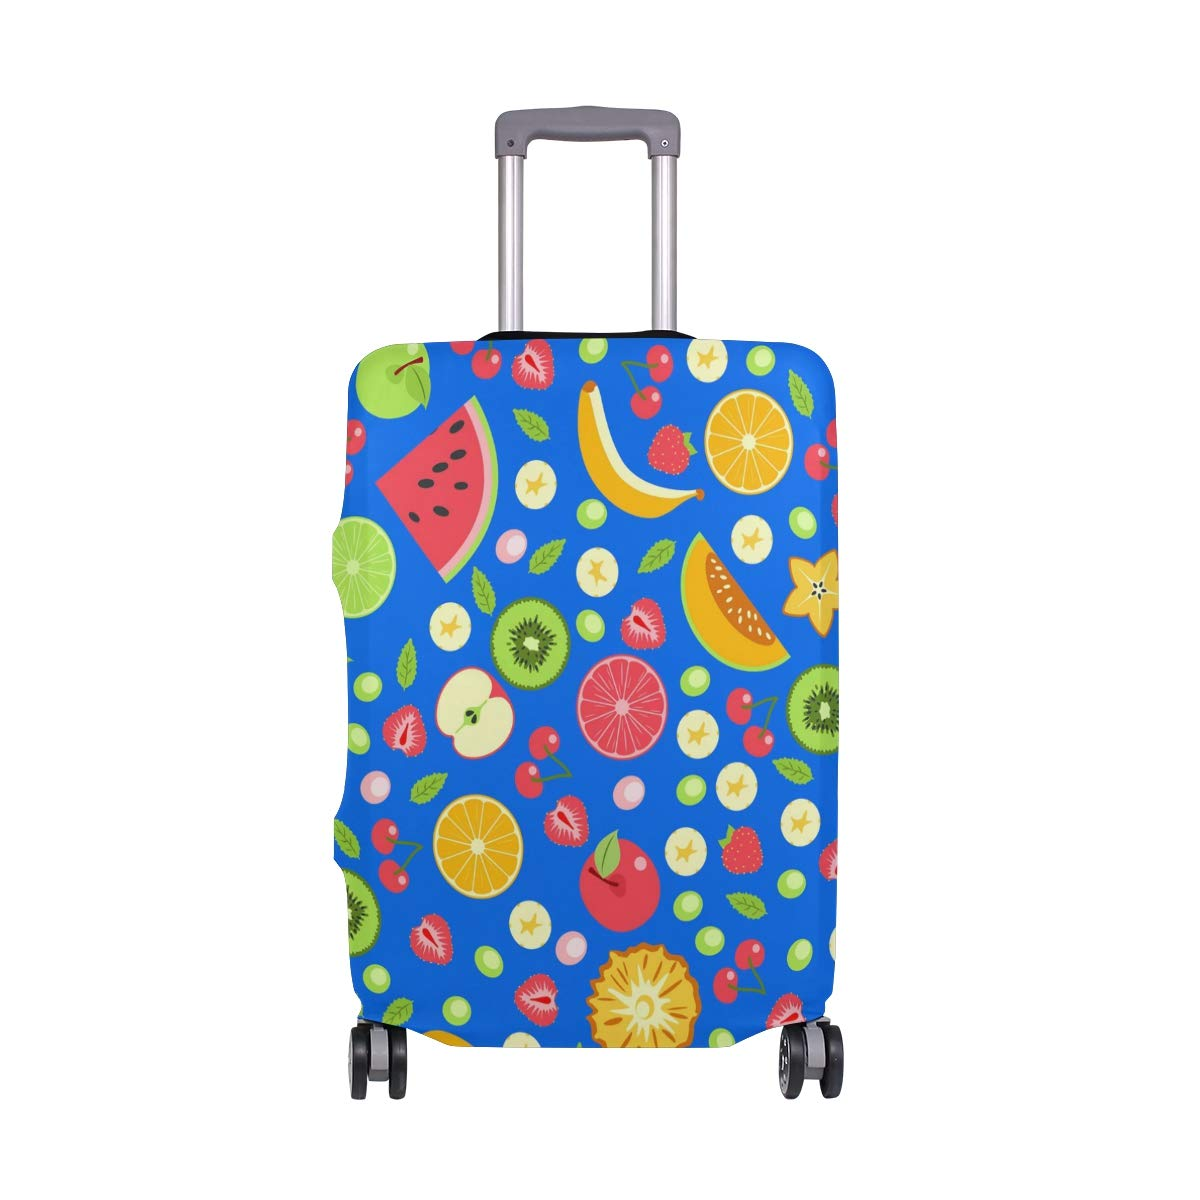 FOLPPLY Colorful Summer Fruits Luggage Cover Baggage Suitcase Travel Protector Fit for 18-32 Inch